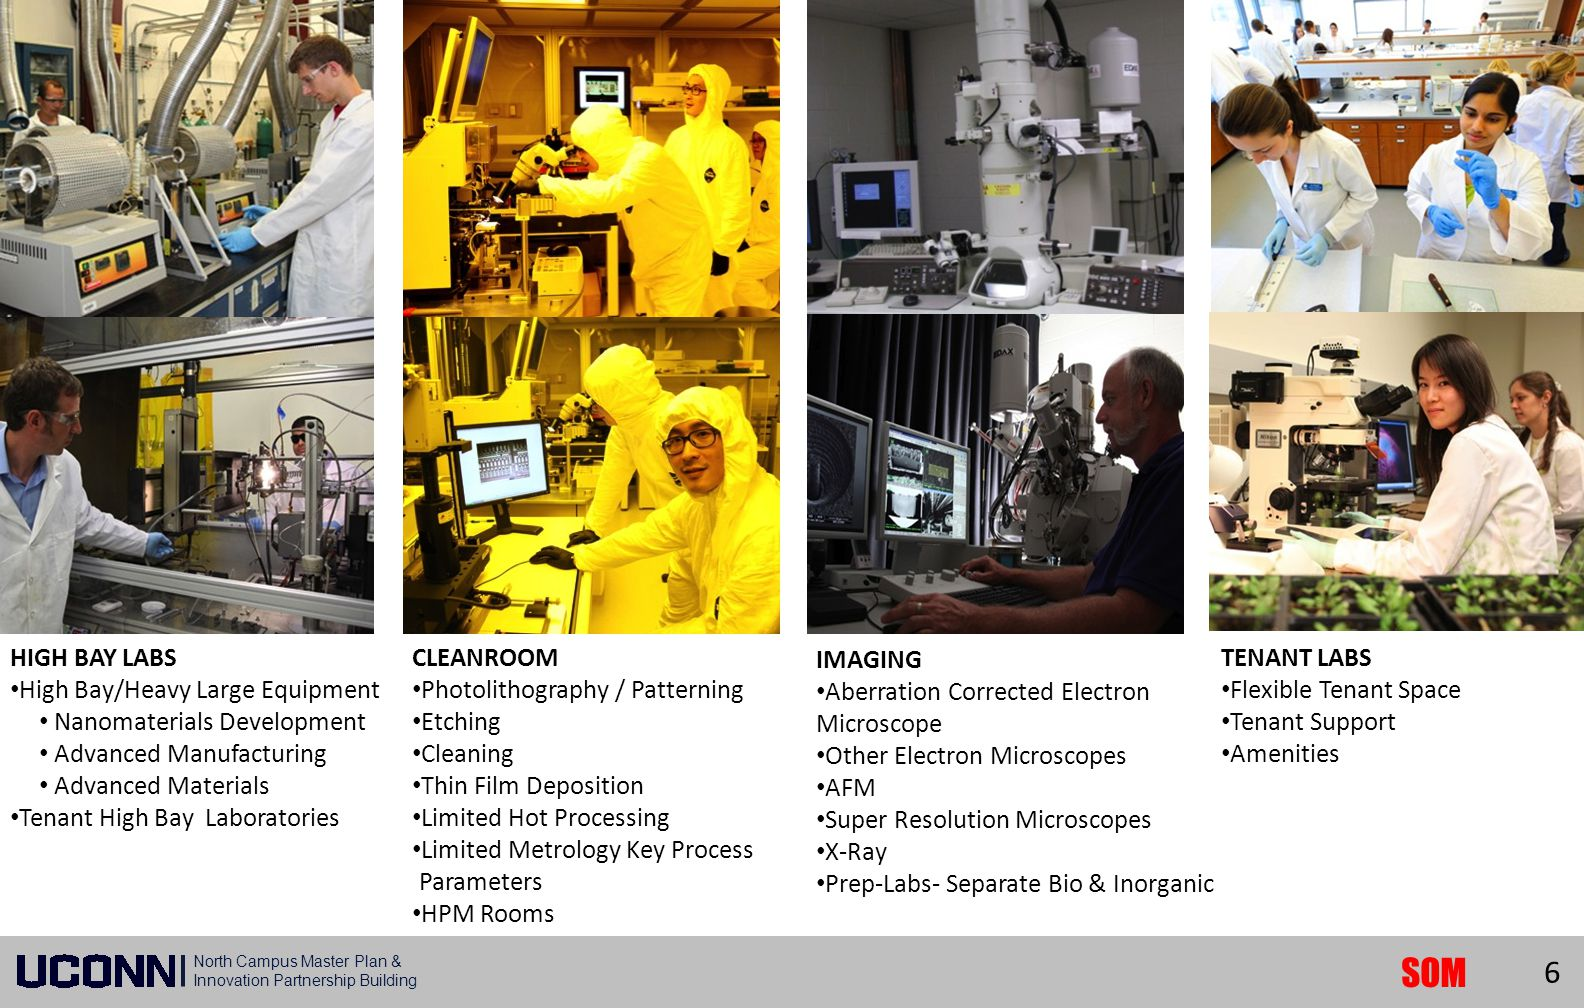 HIGH BAY LABS High Bay/Heavy Large Equipment. Nanomaterials Development. Advanced Manufacturing. Advanced Materials.